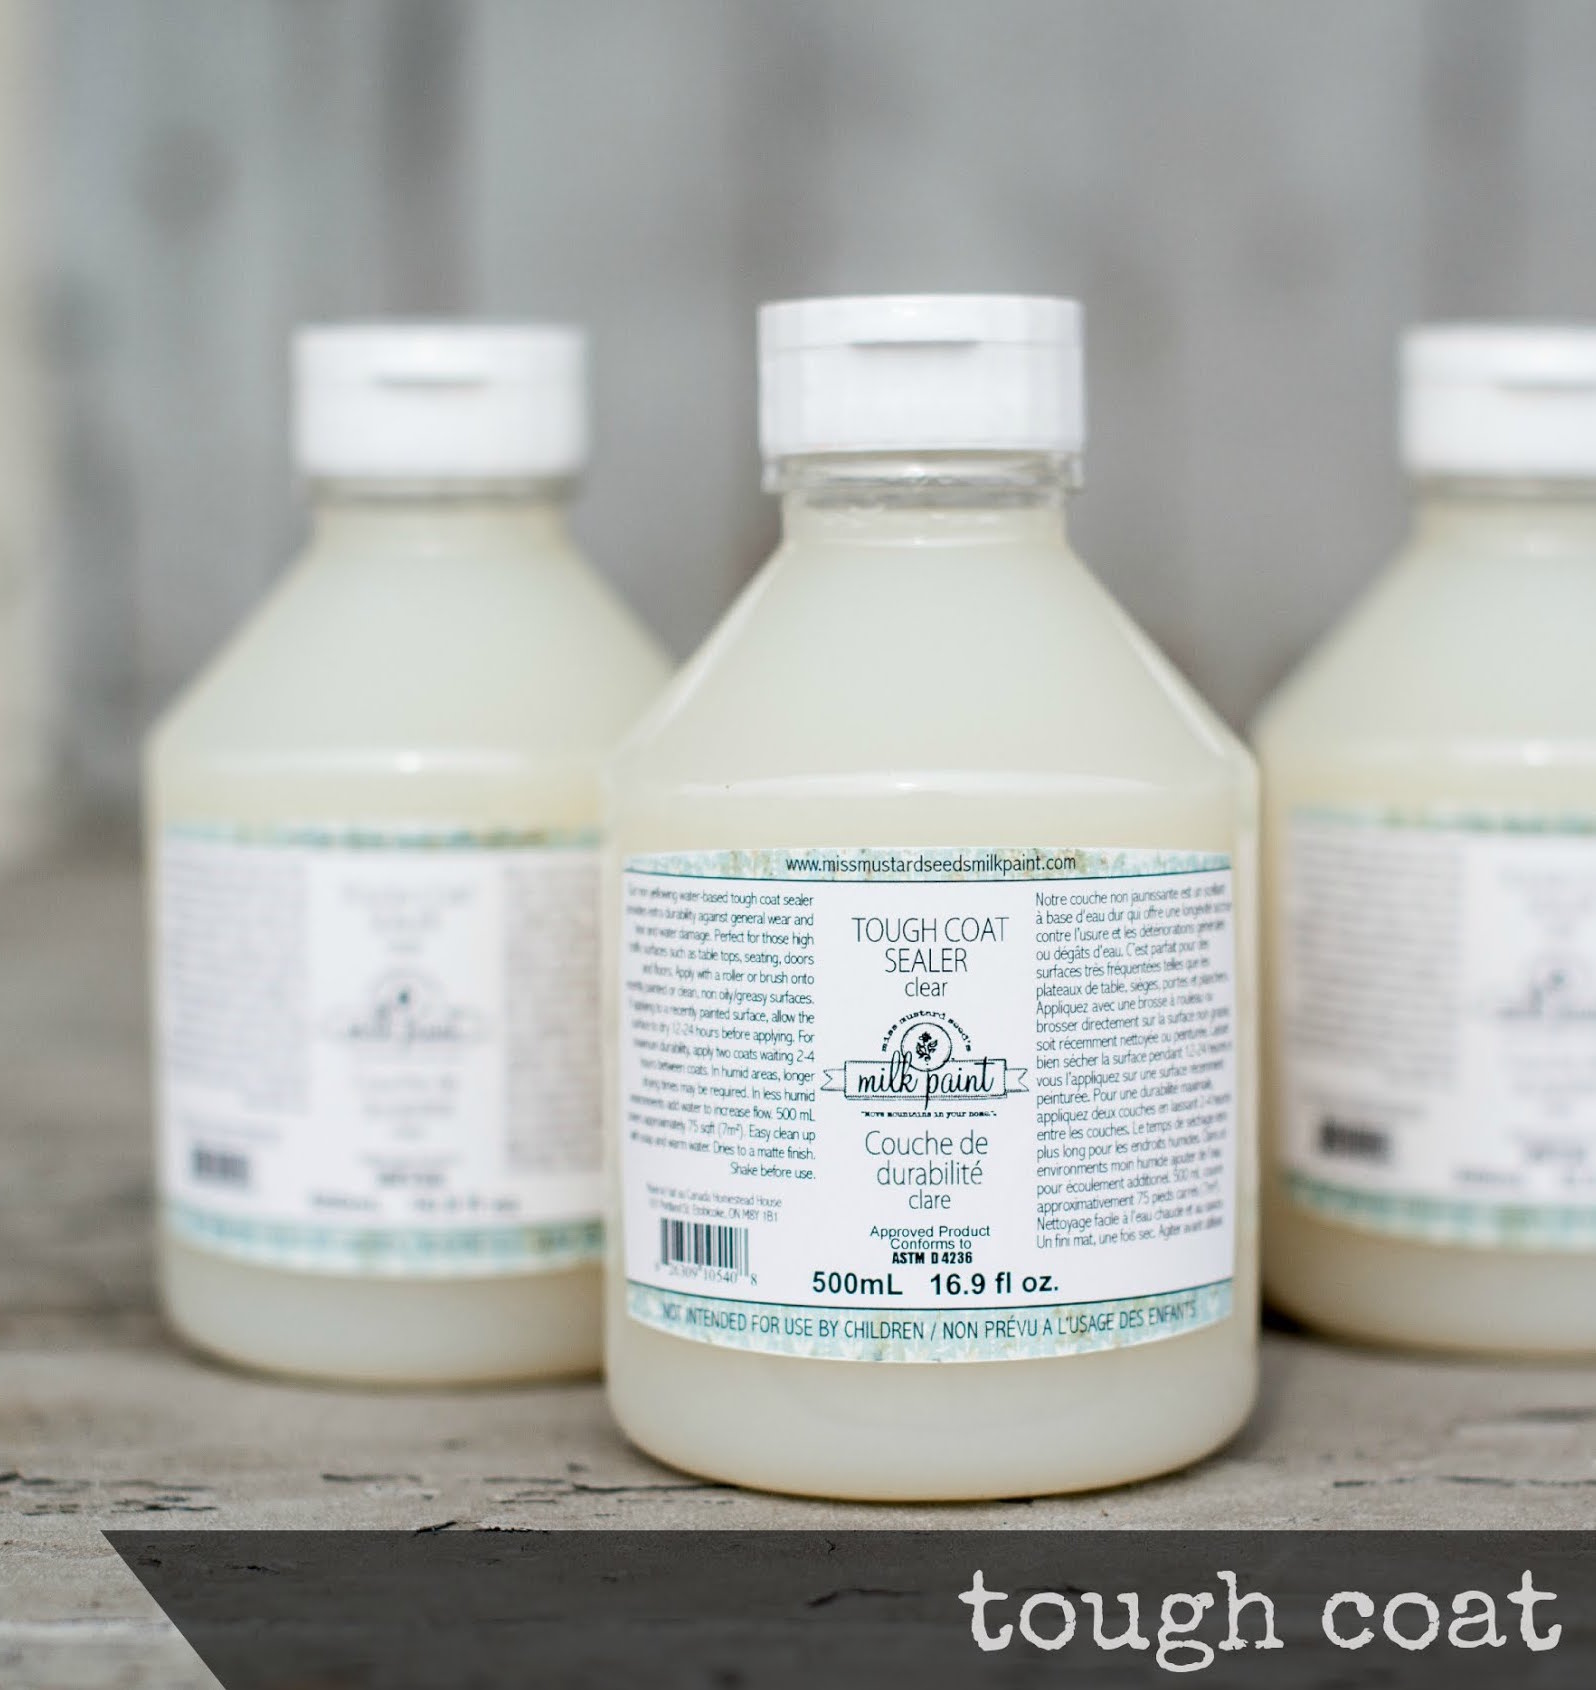 Tough Coat - Miss Mustard Seed Milk Paint